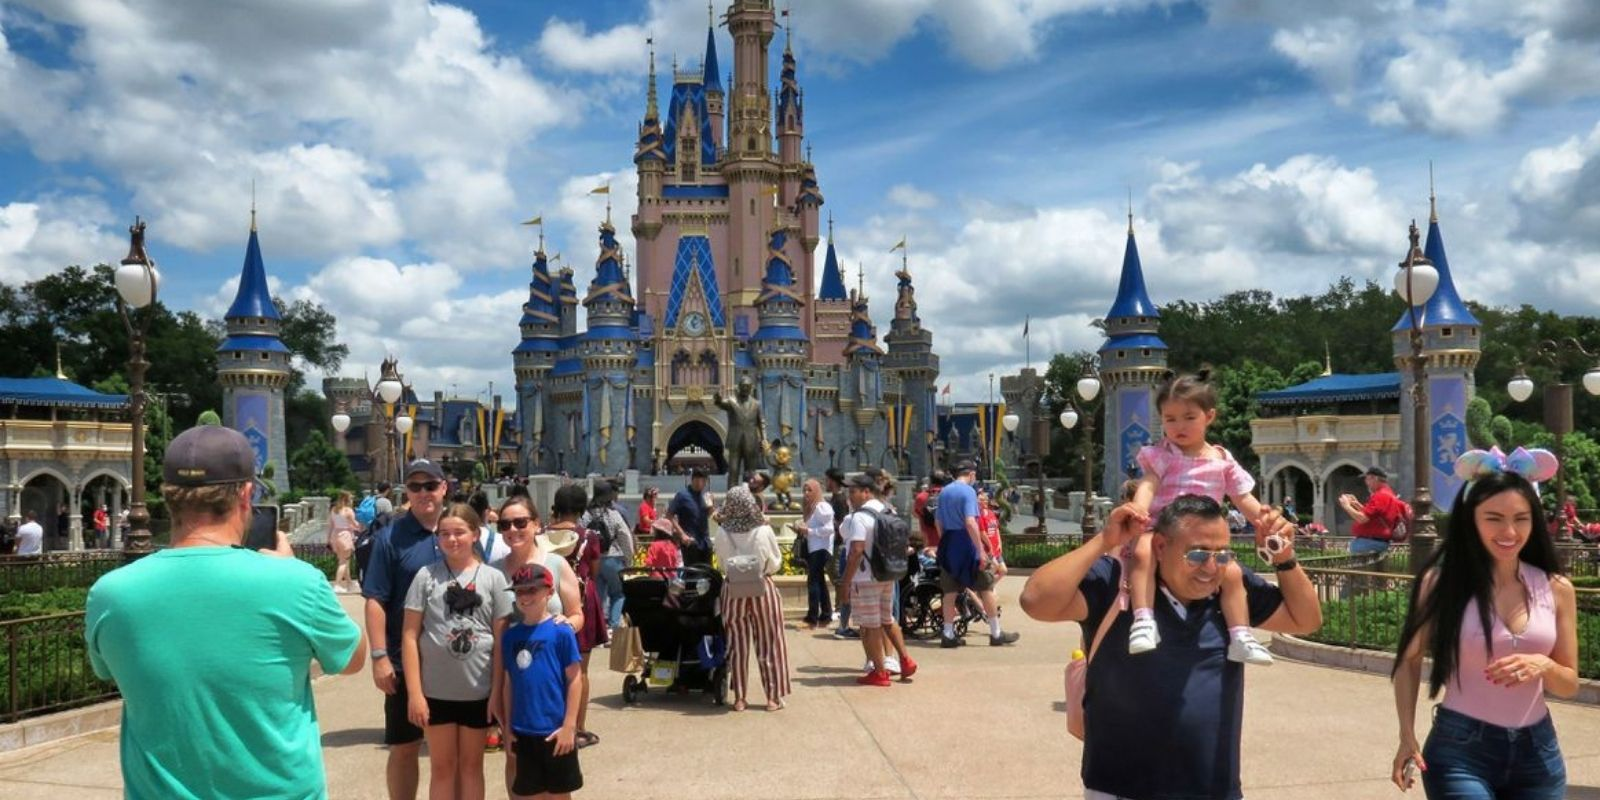 Disney moves 2,000 jobs from California to 'Florida's business-friendly climate'